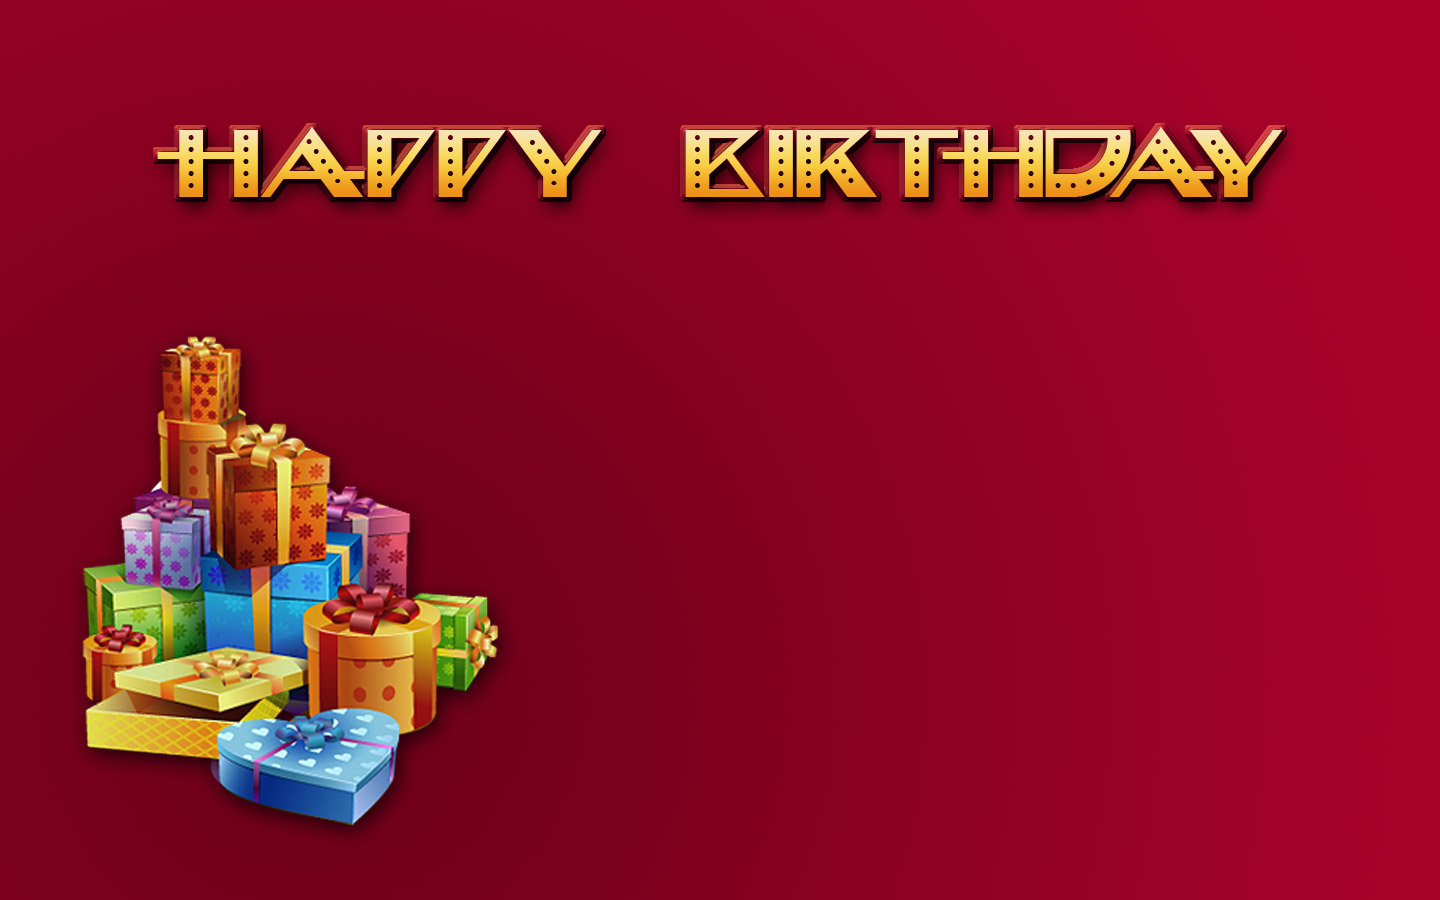 birthday background hd wallpapers ; Birthday-Images-Wallpapers-028